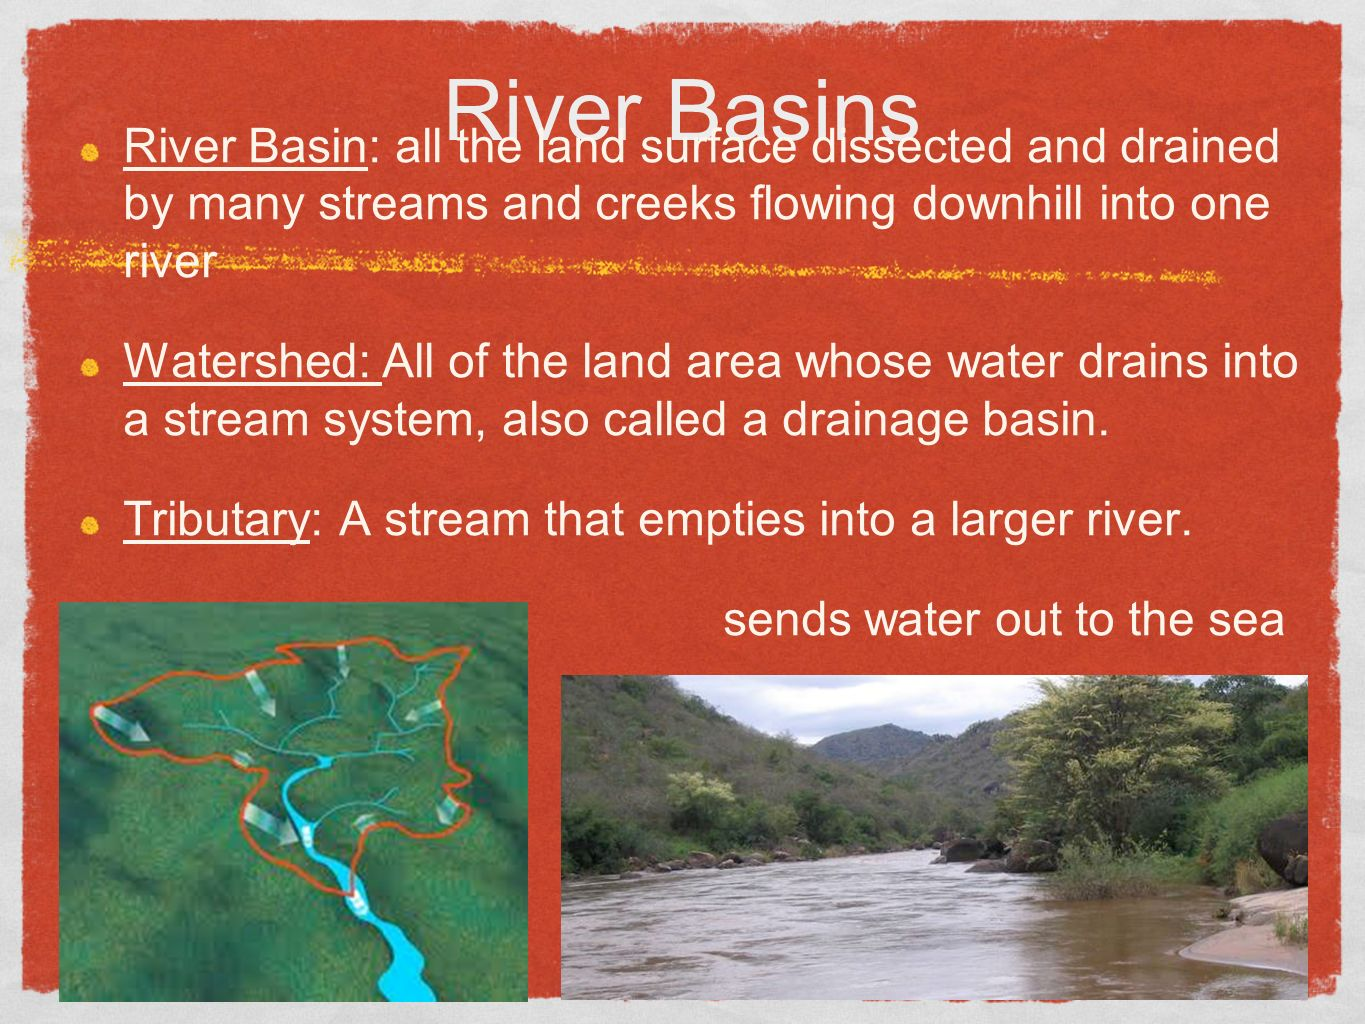 River Basins River Basin: all the land surface dissected and drained by many streams and creeks flowing downhill into one river Watershed: All of the land area whose water drains into a stream system, also called a drainage basin.